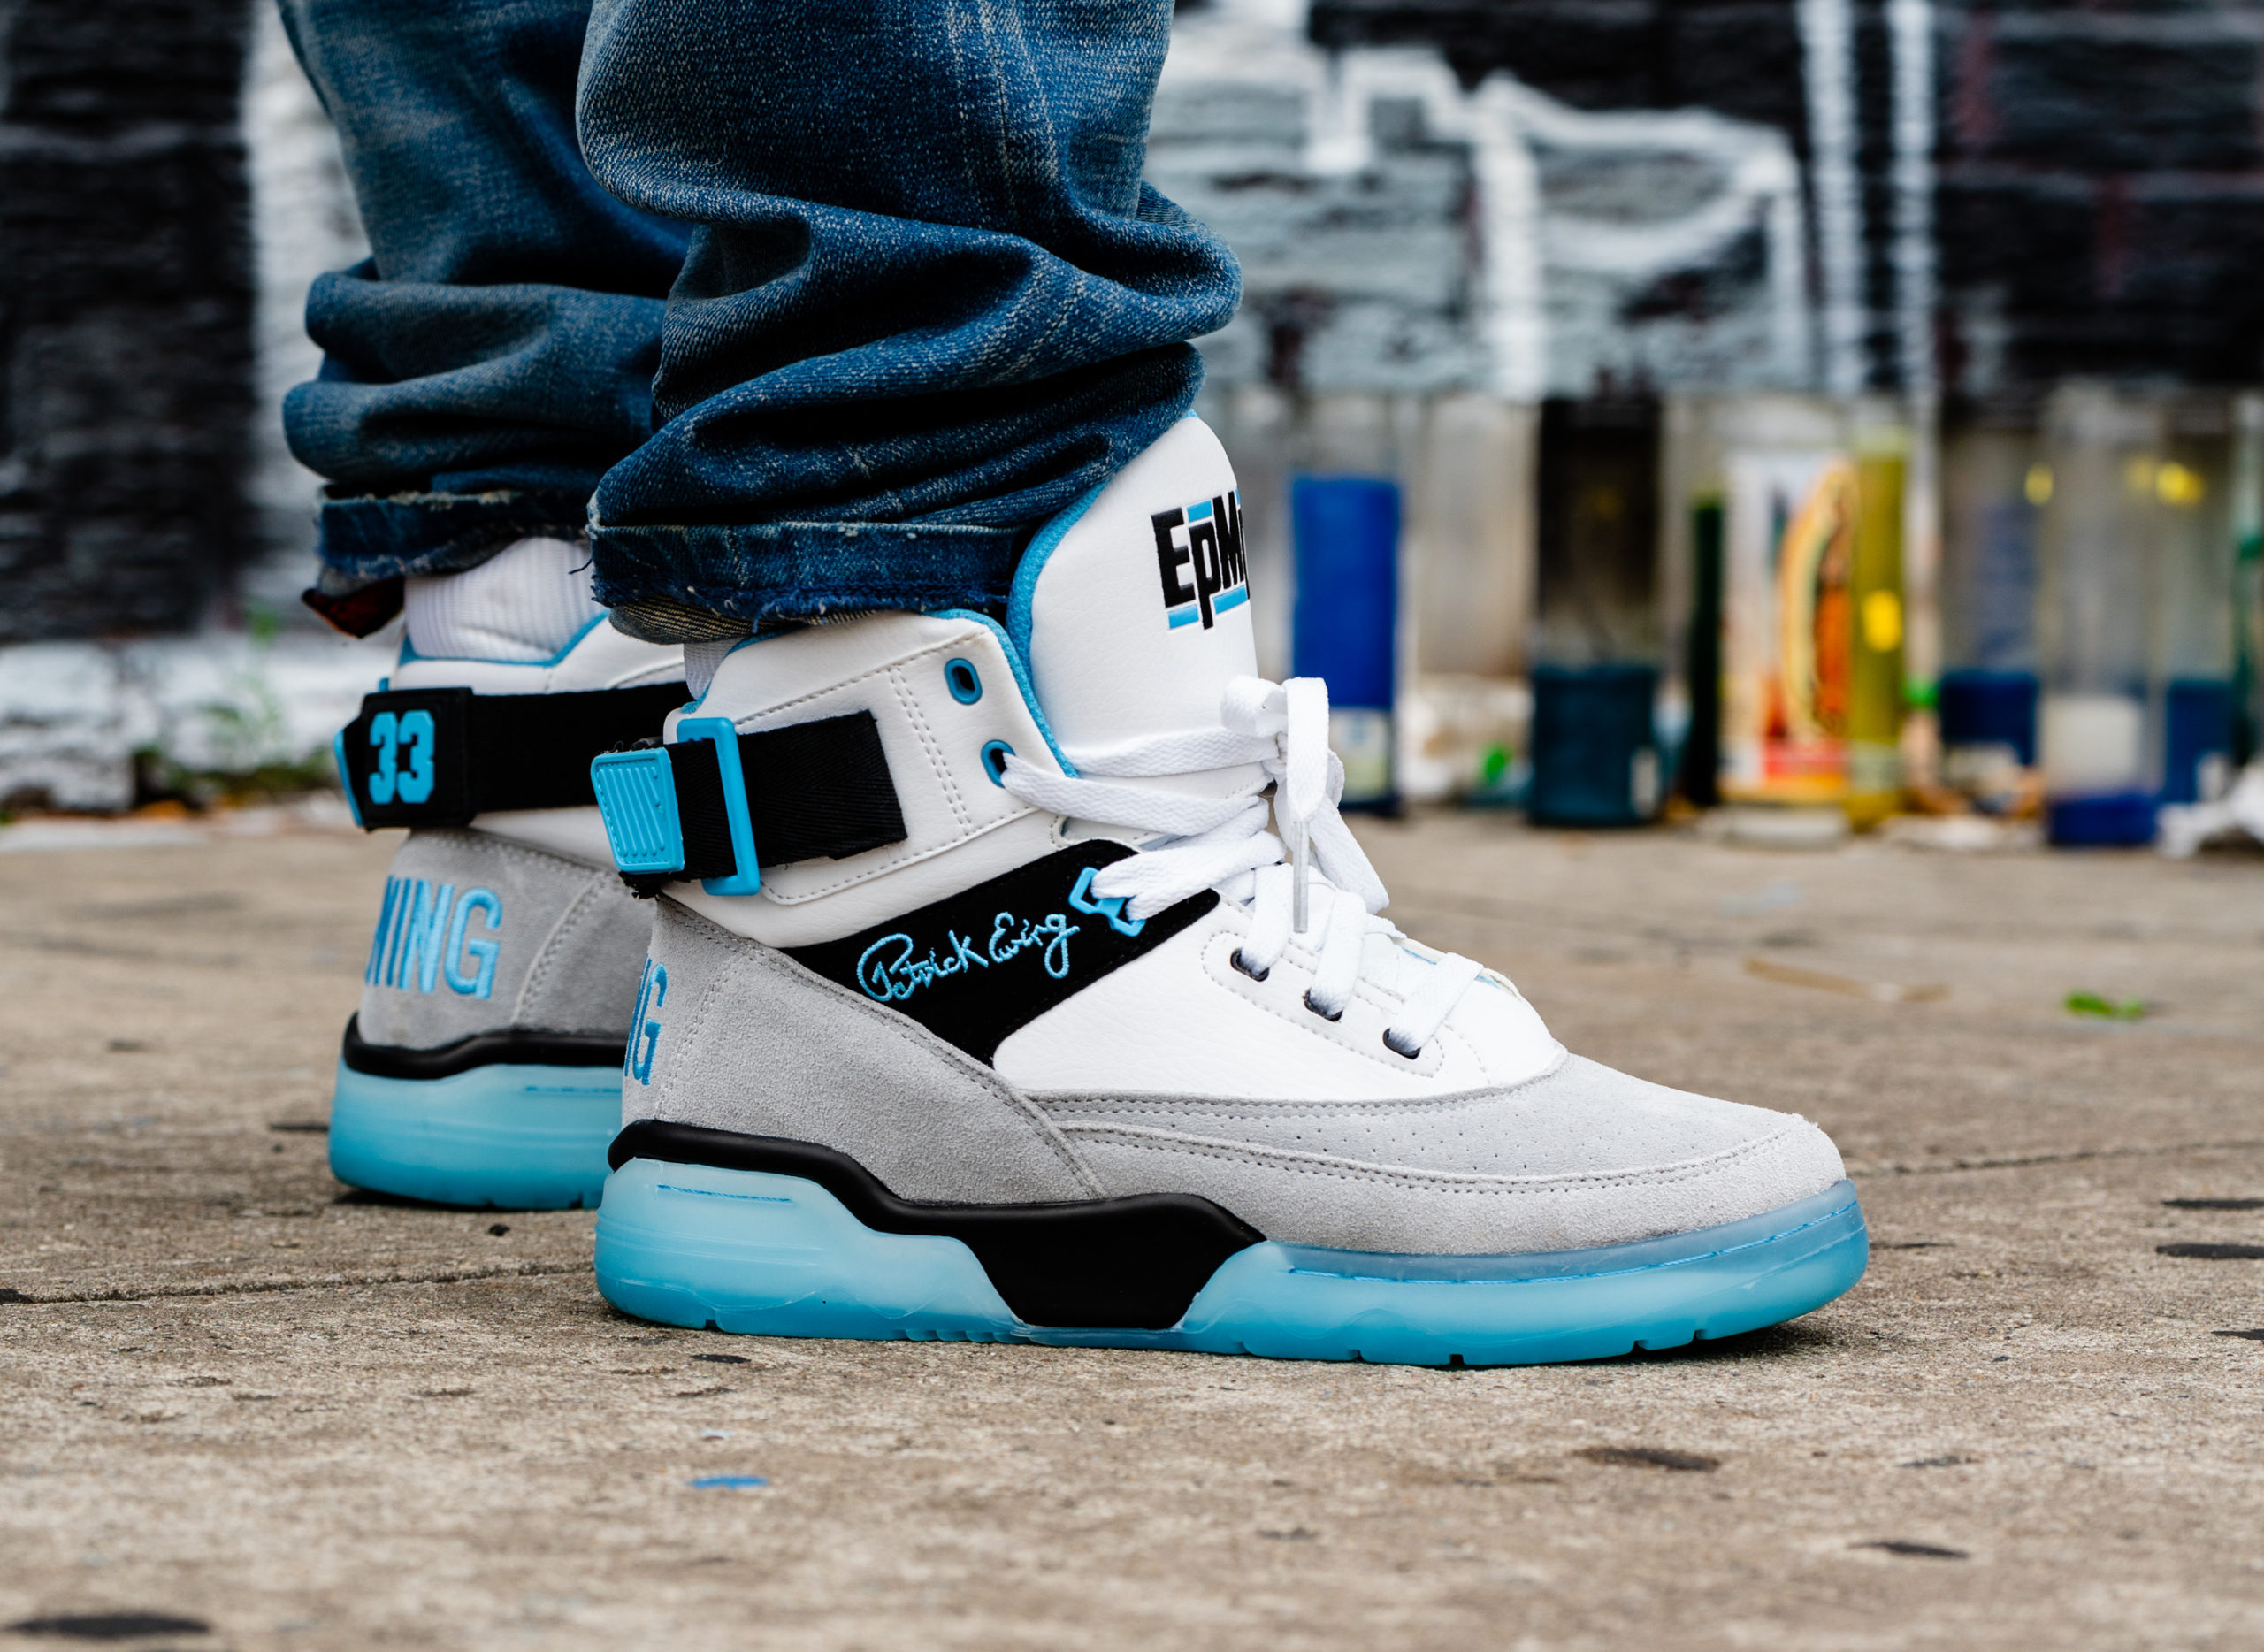 Ewing Athletics And EPMD Have